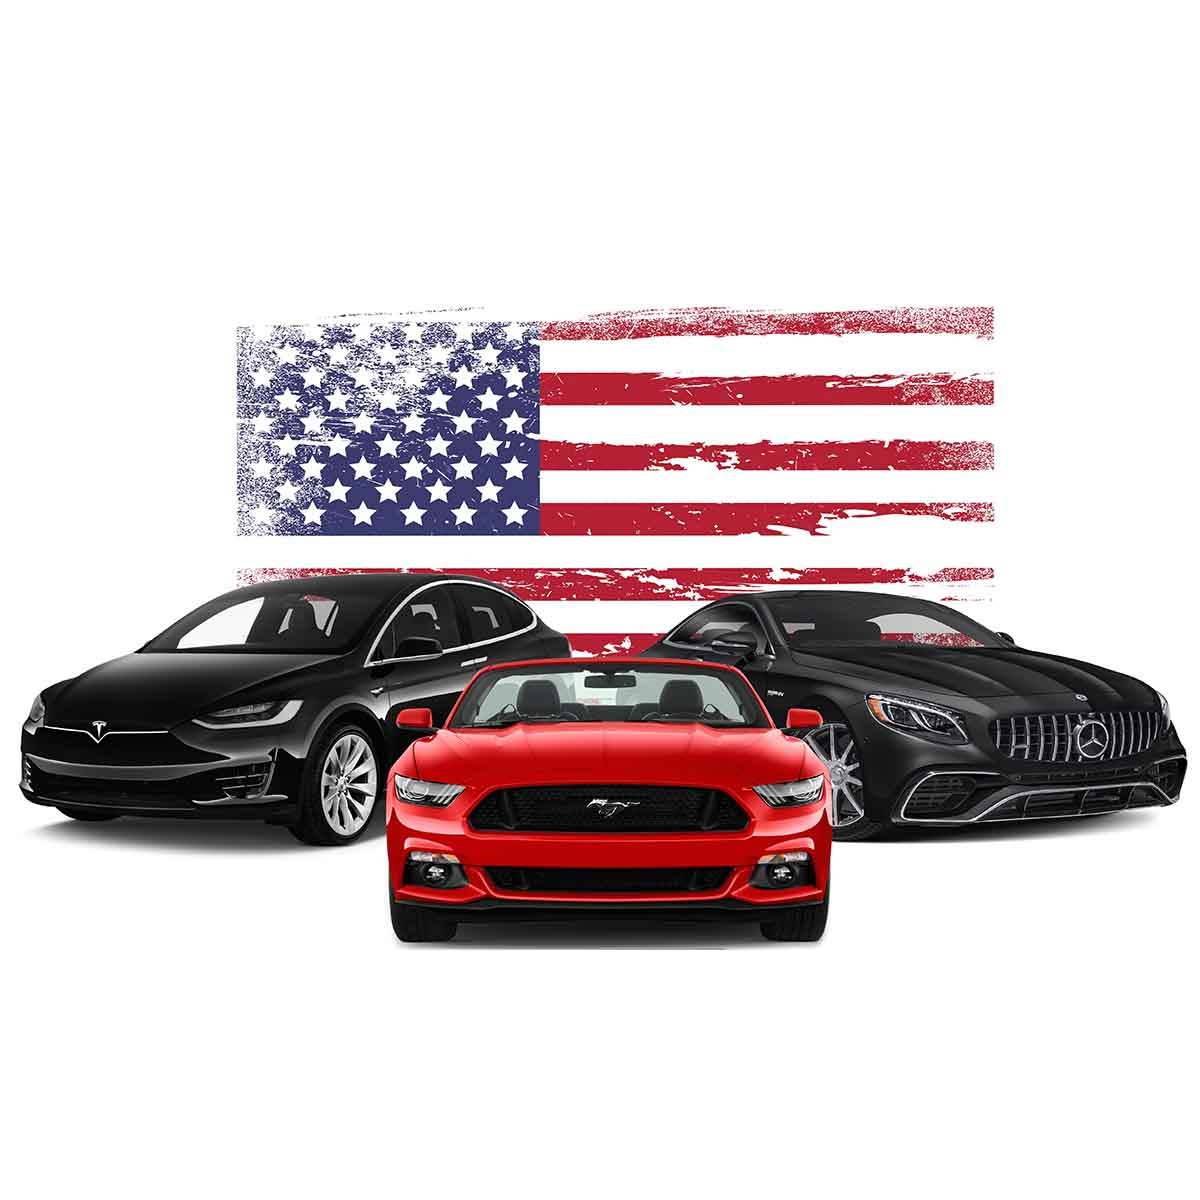 Cars from the USA